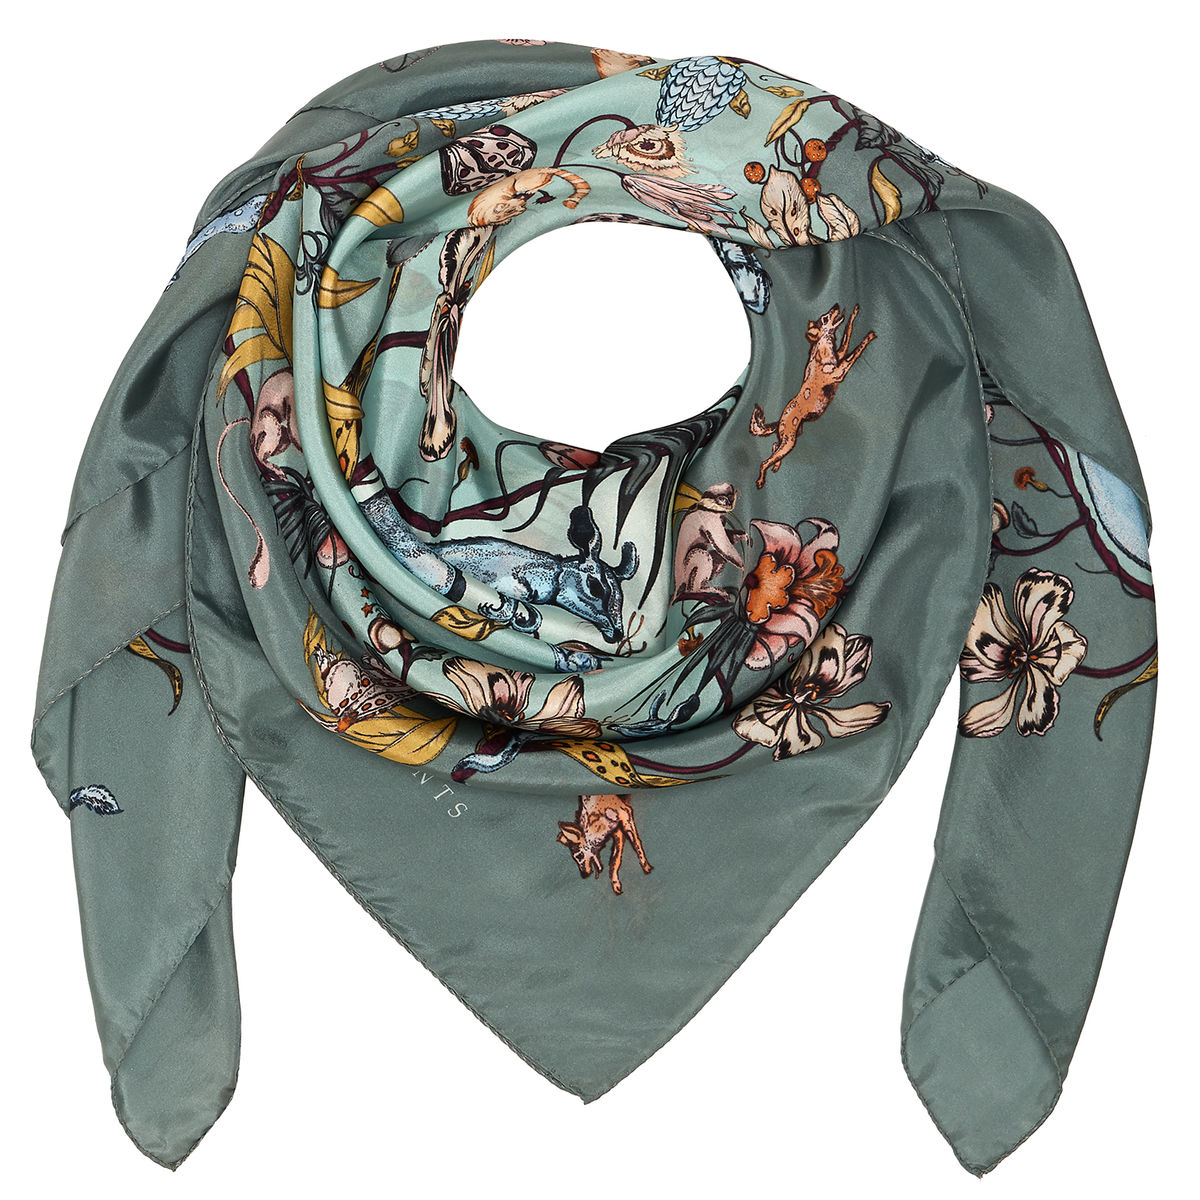 KANGAROO SQUARE SCARF - product images  of